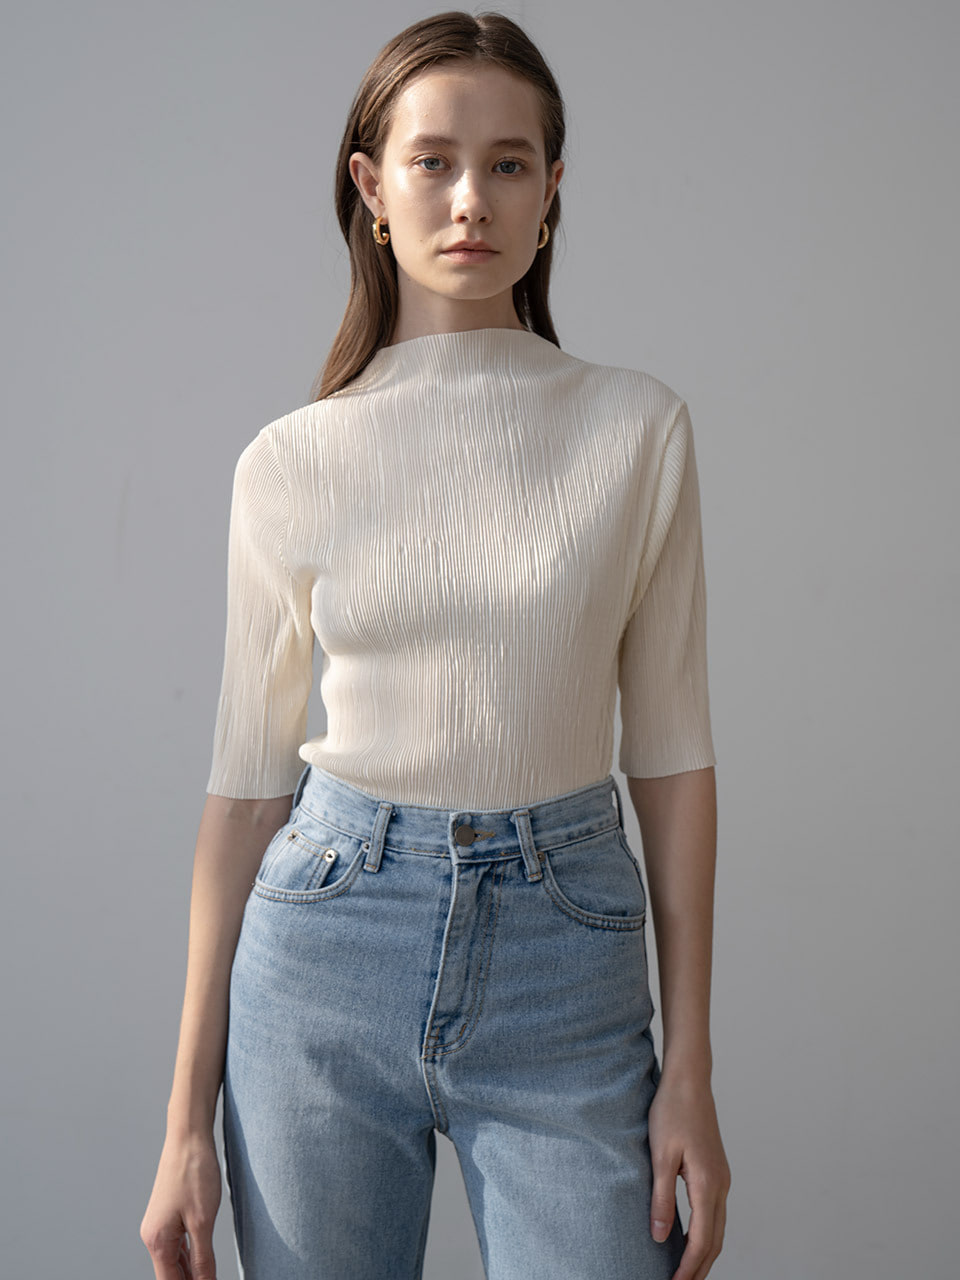 New multi pleated mockneck blouse in cream